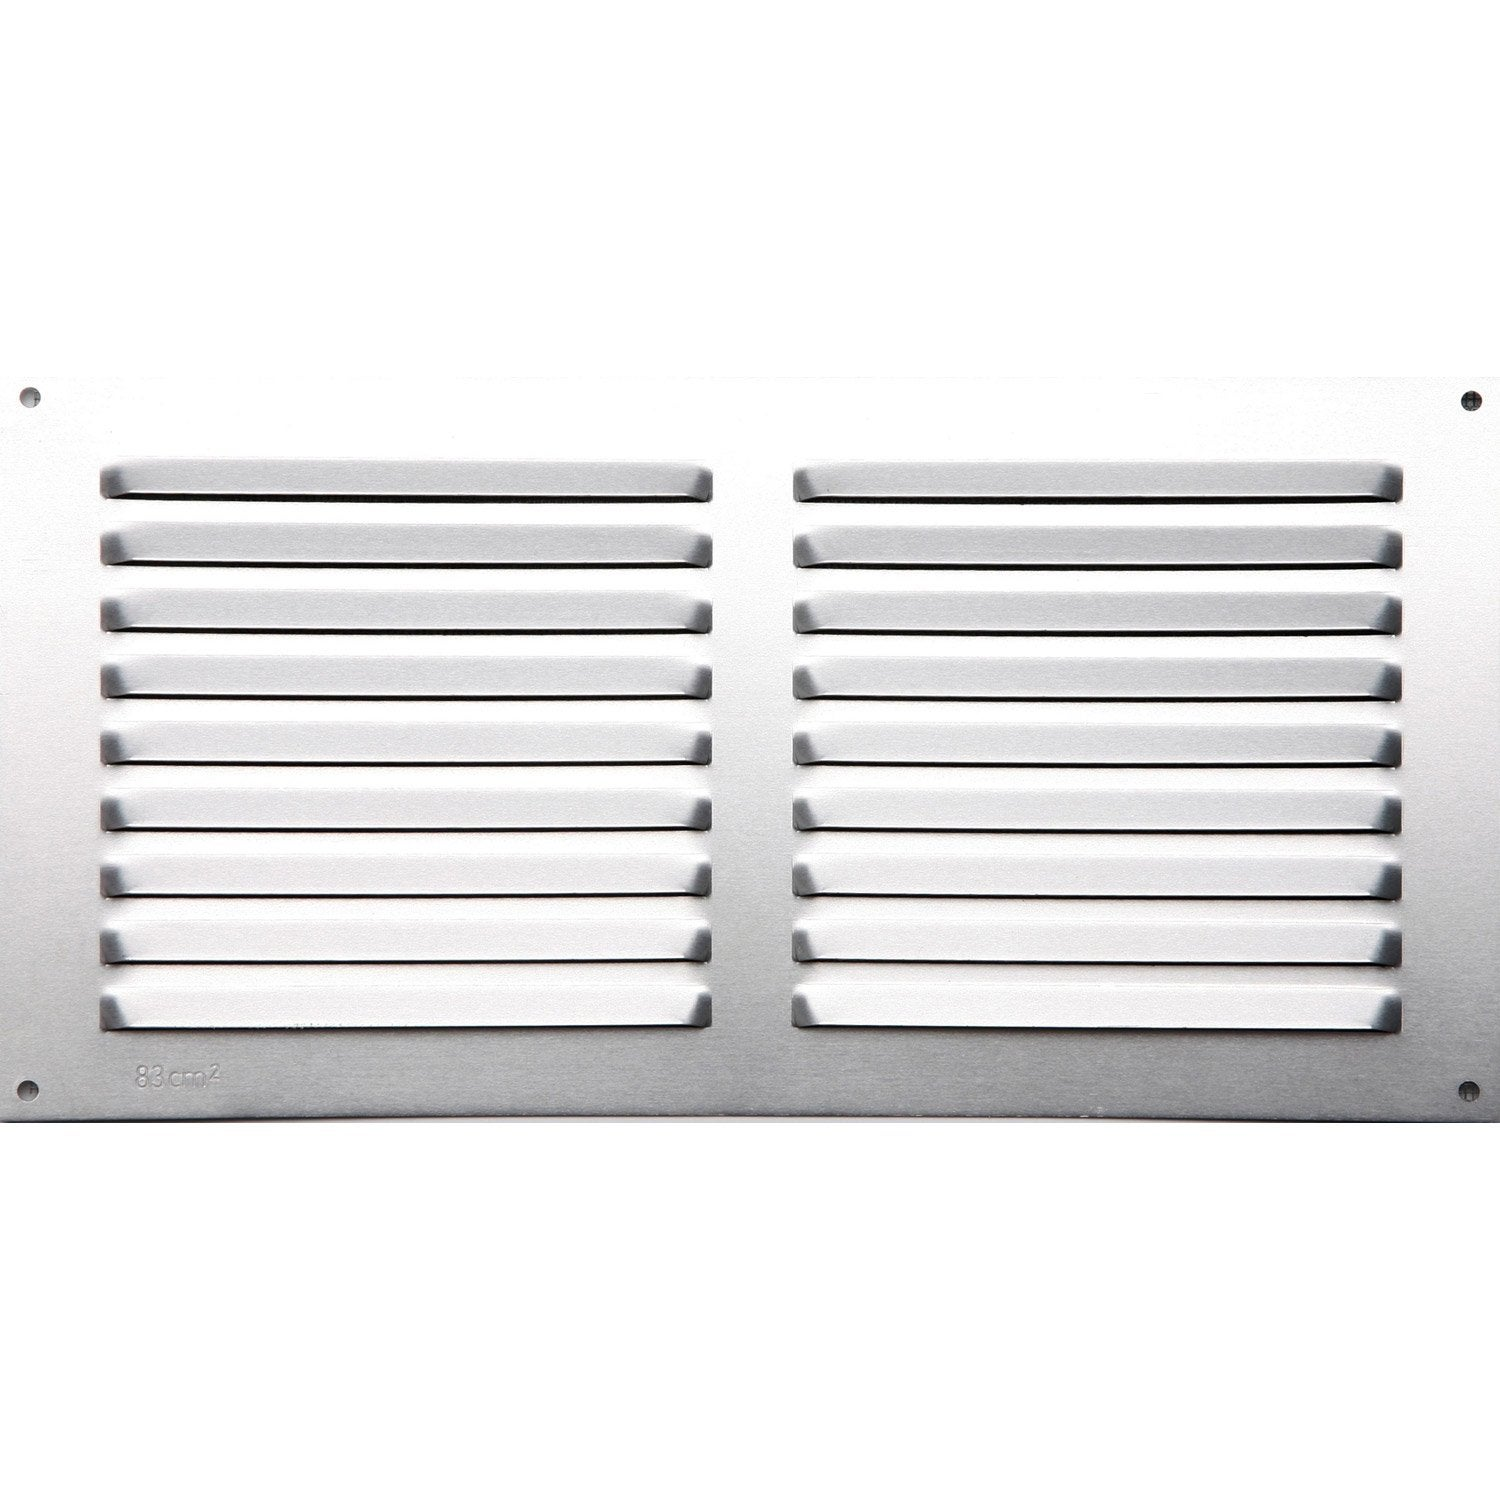 Grille d 39 a ration aluminium anodis x cm for Grille aeration fenetre hygroreglable